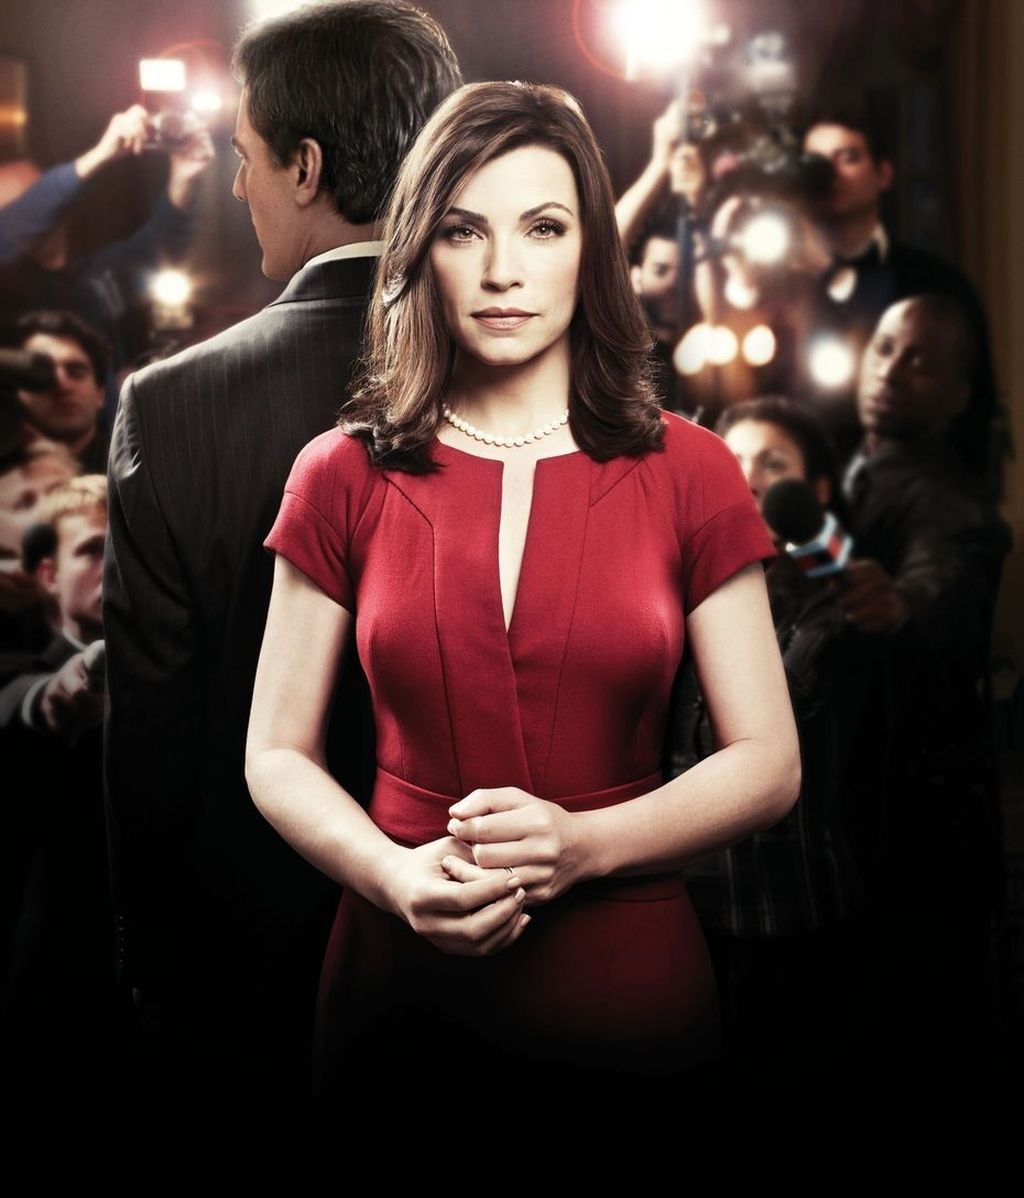 Julianna Margulies, The Good Wife